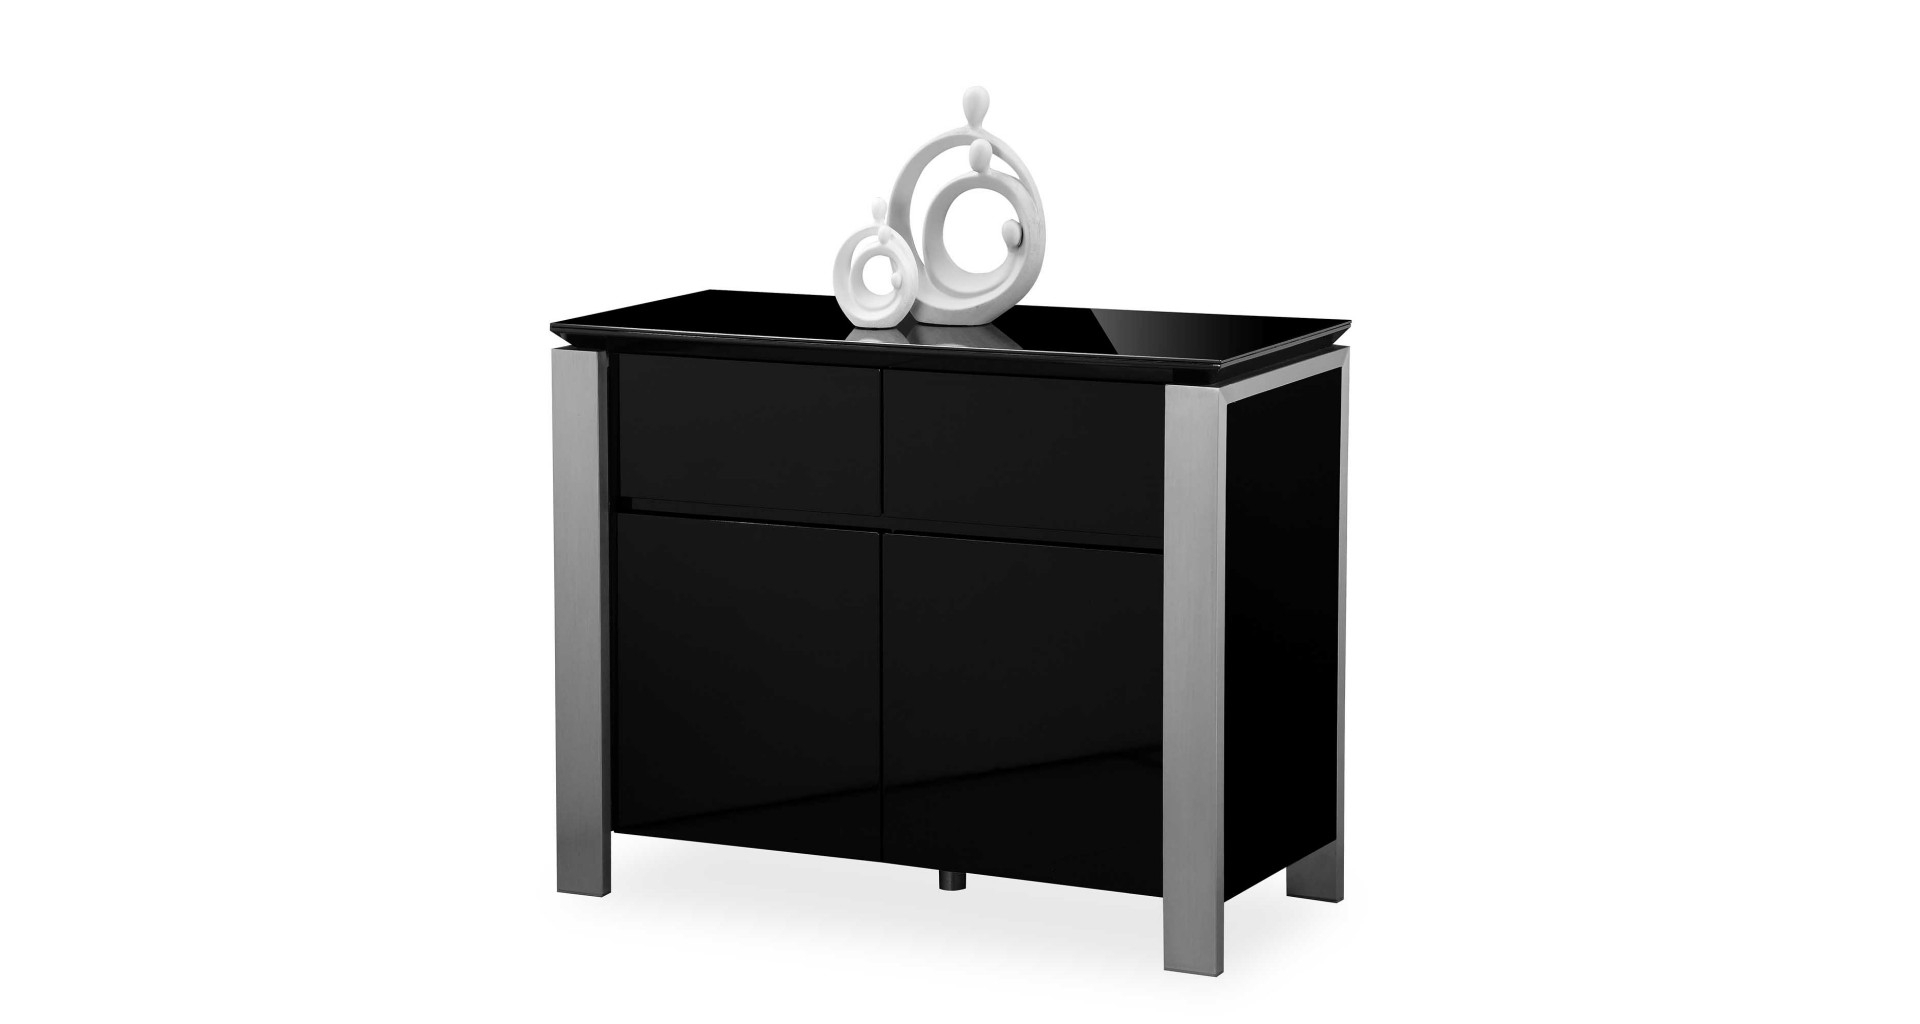 Tribeca – Small Sideboard – Black High Gloss Pertaining To Tribeca Sideboards (View 5 of 20)